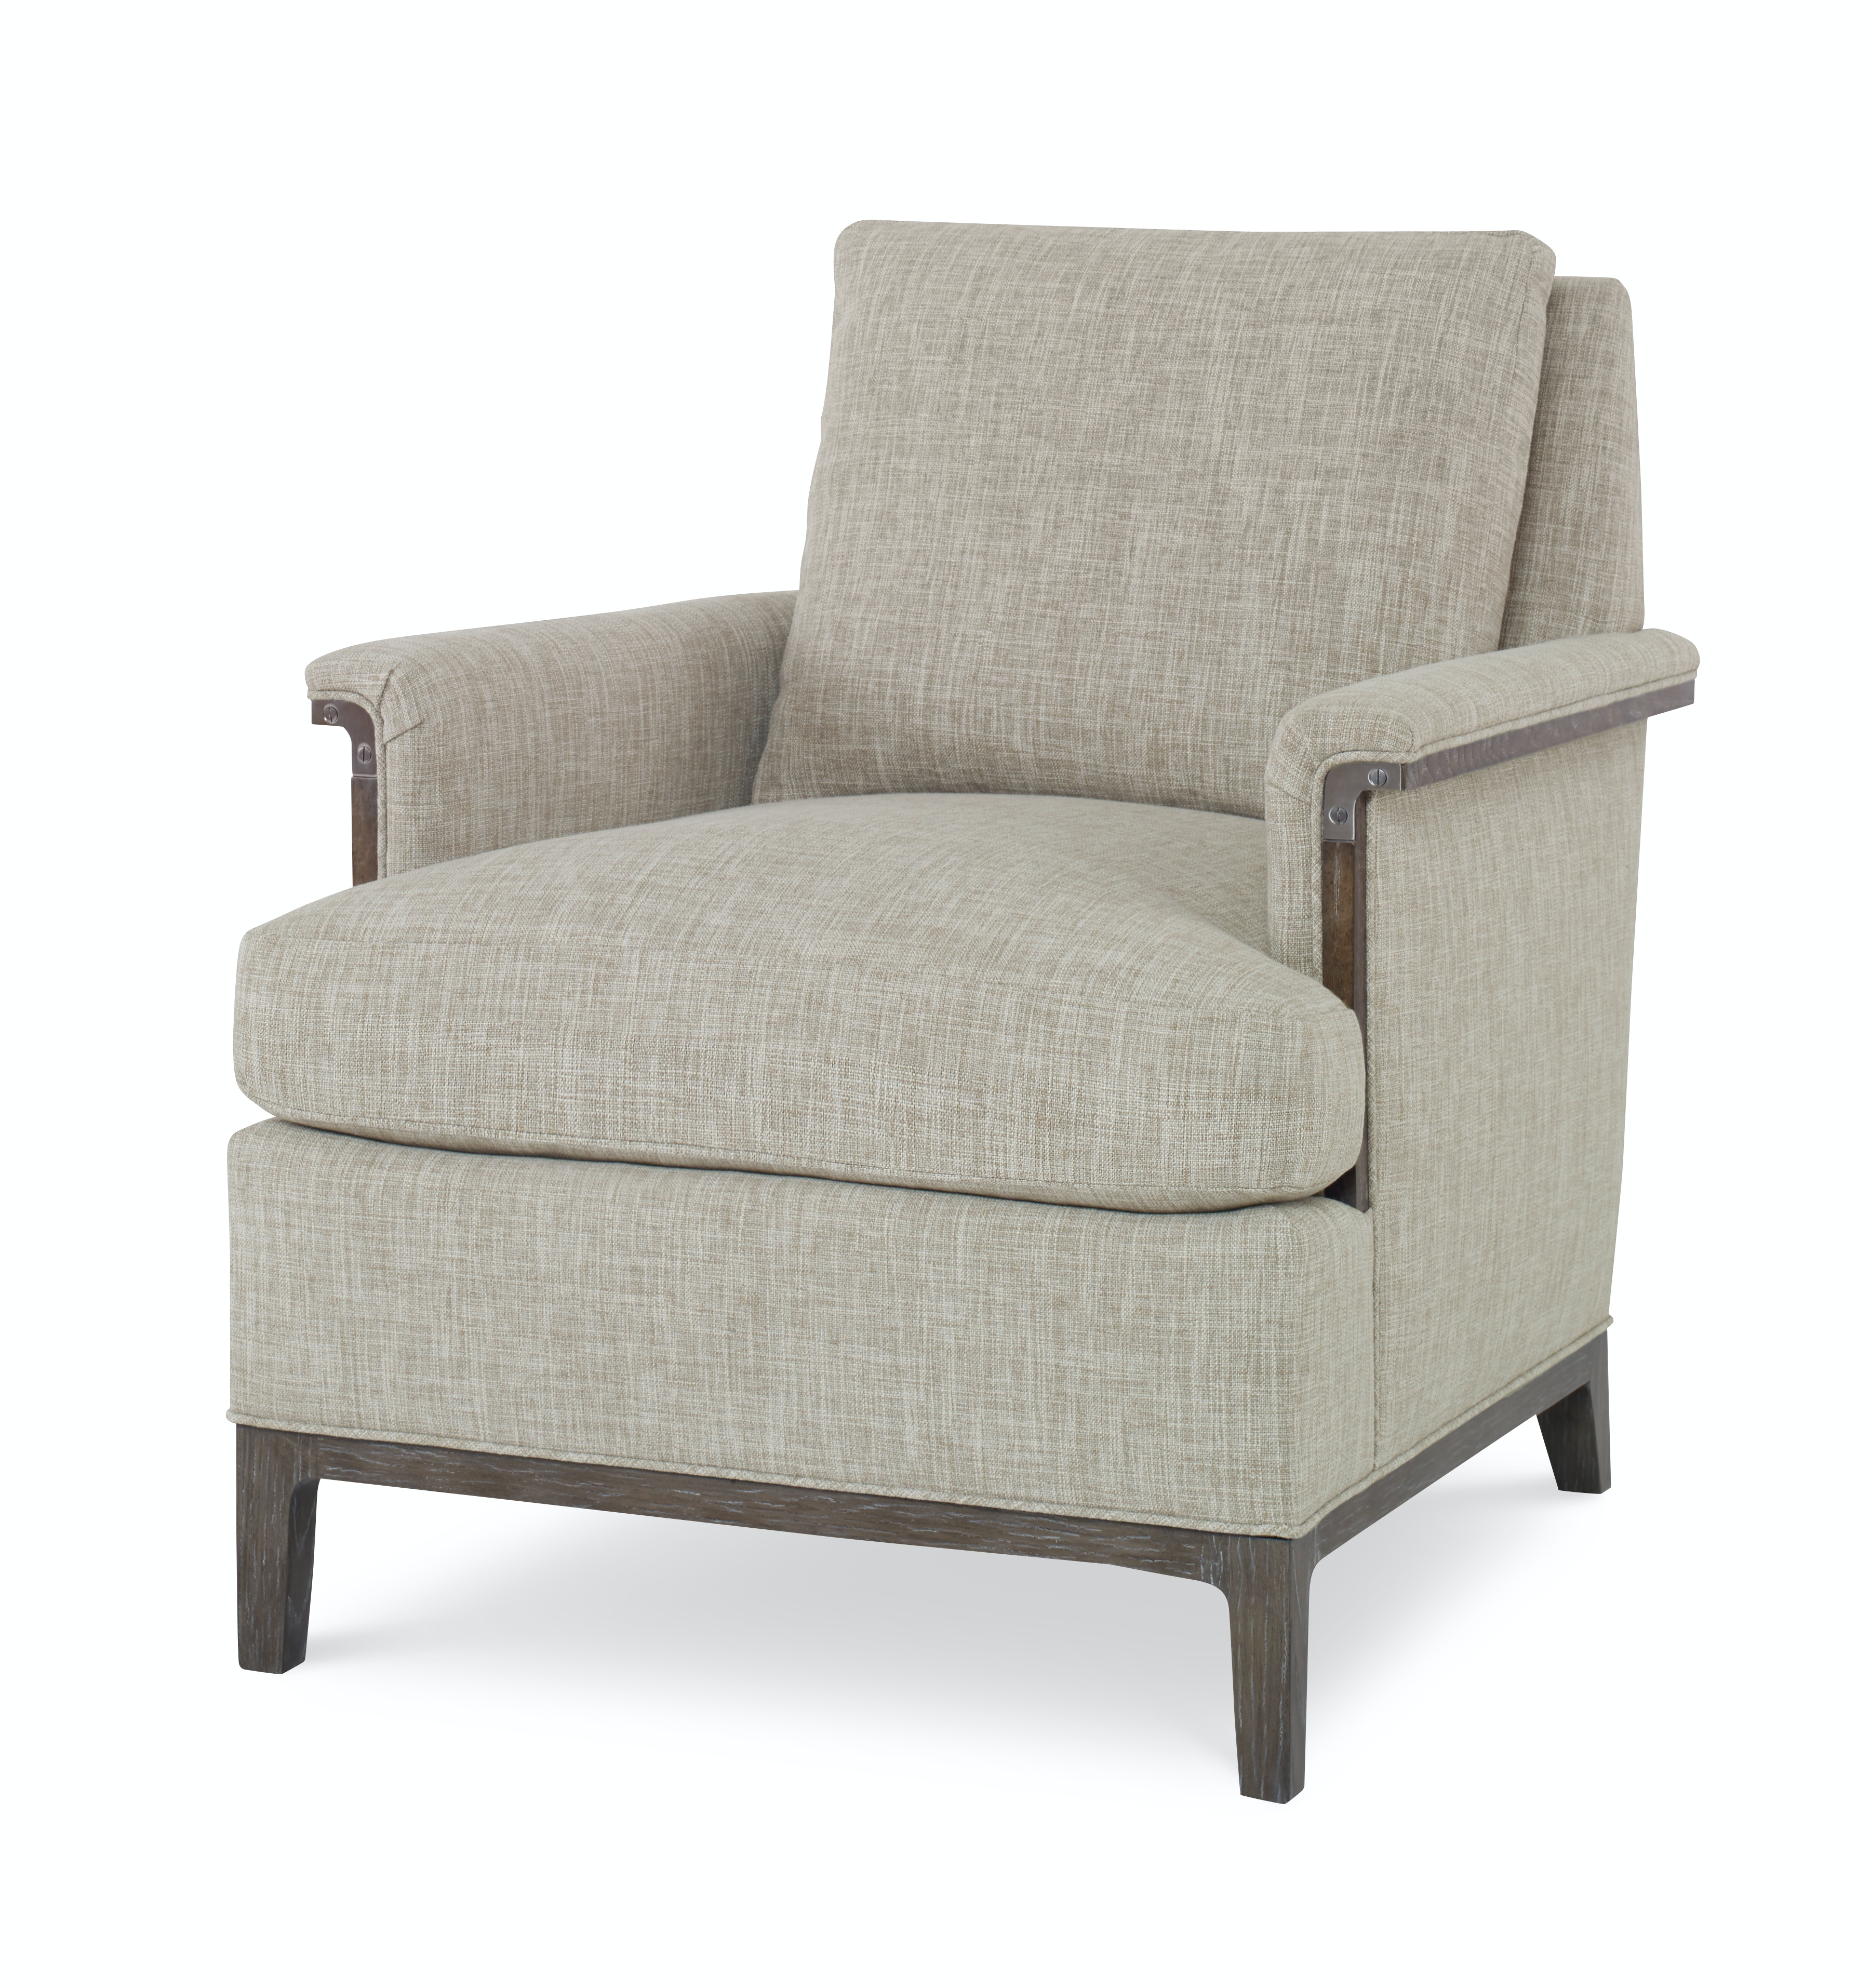 B621. Tileston Chair